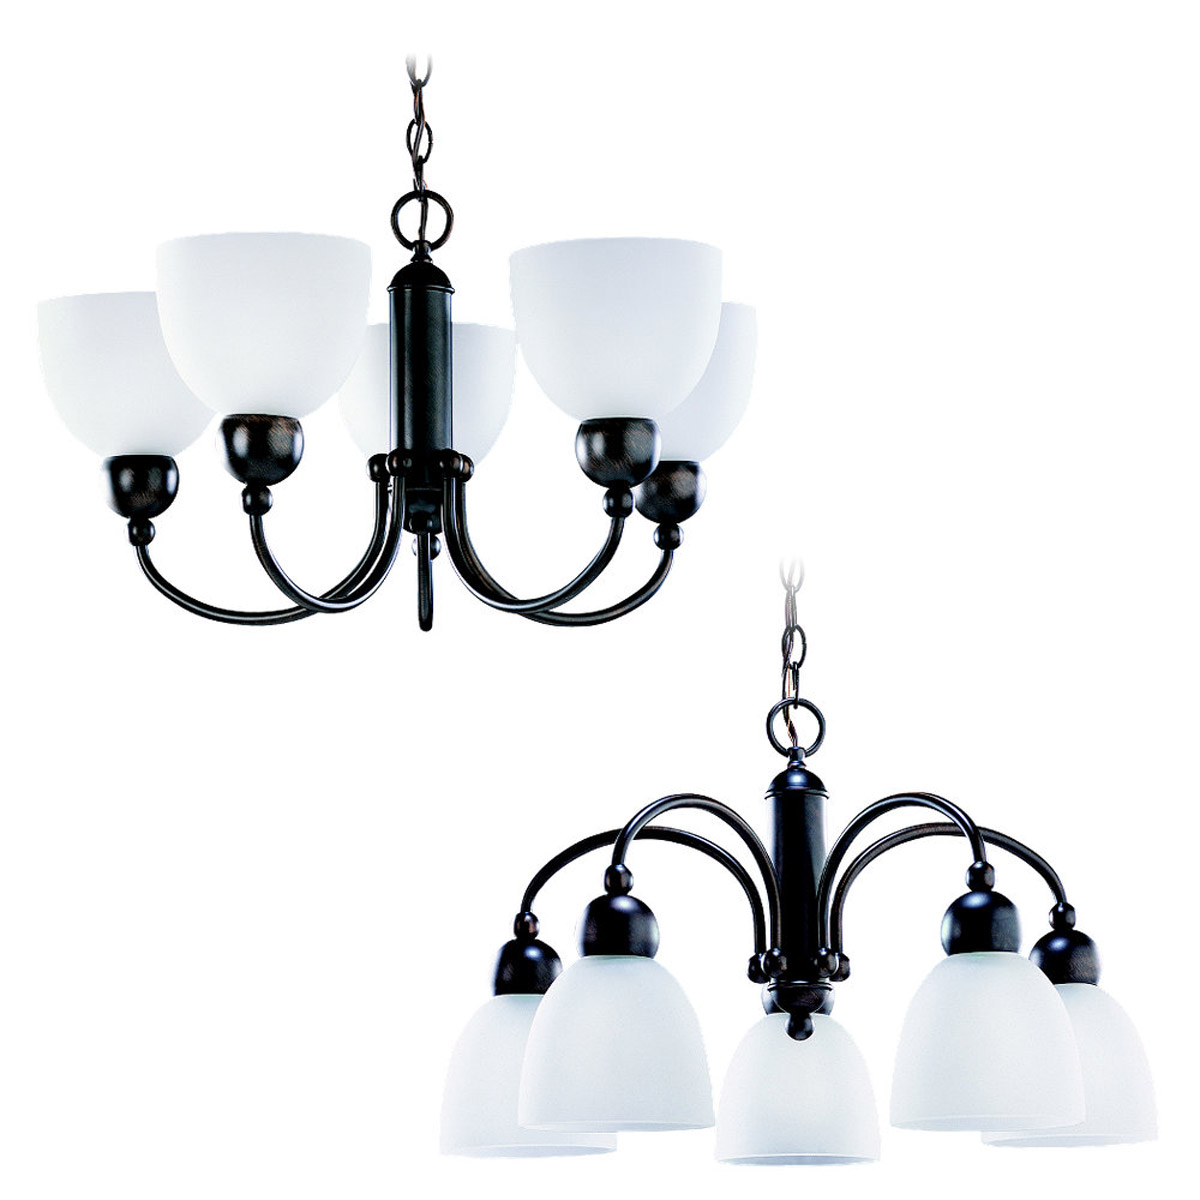 Sea Gull Lighting Metropolis 5 Light Chandelier in Copper Revival 31036-777